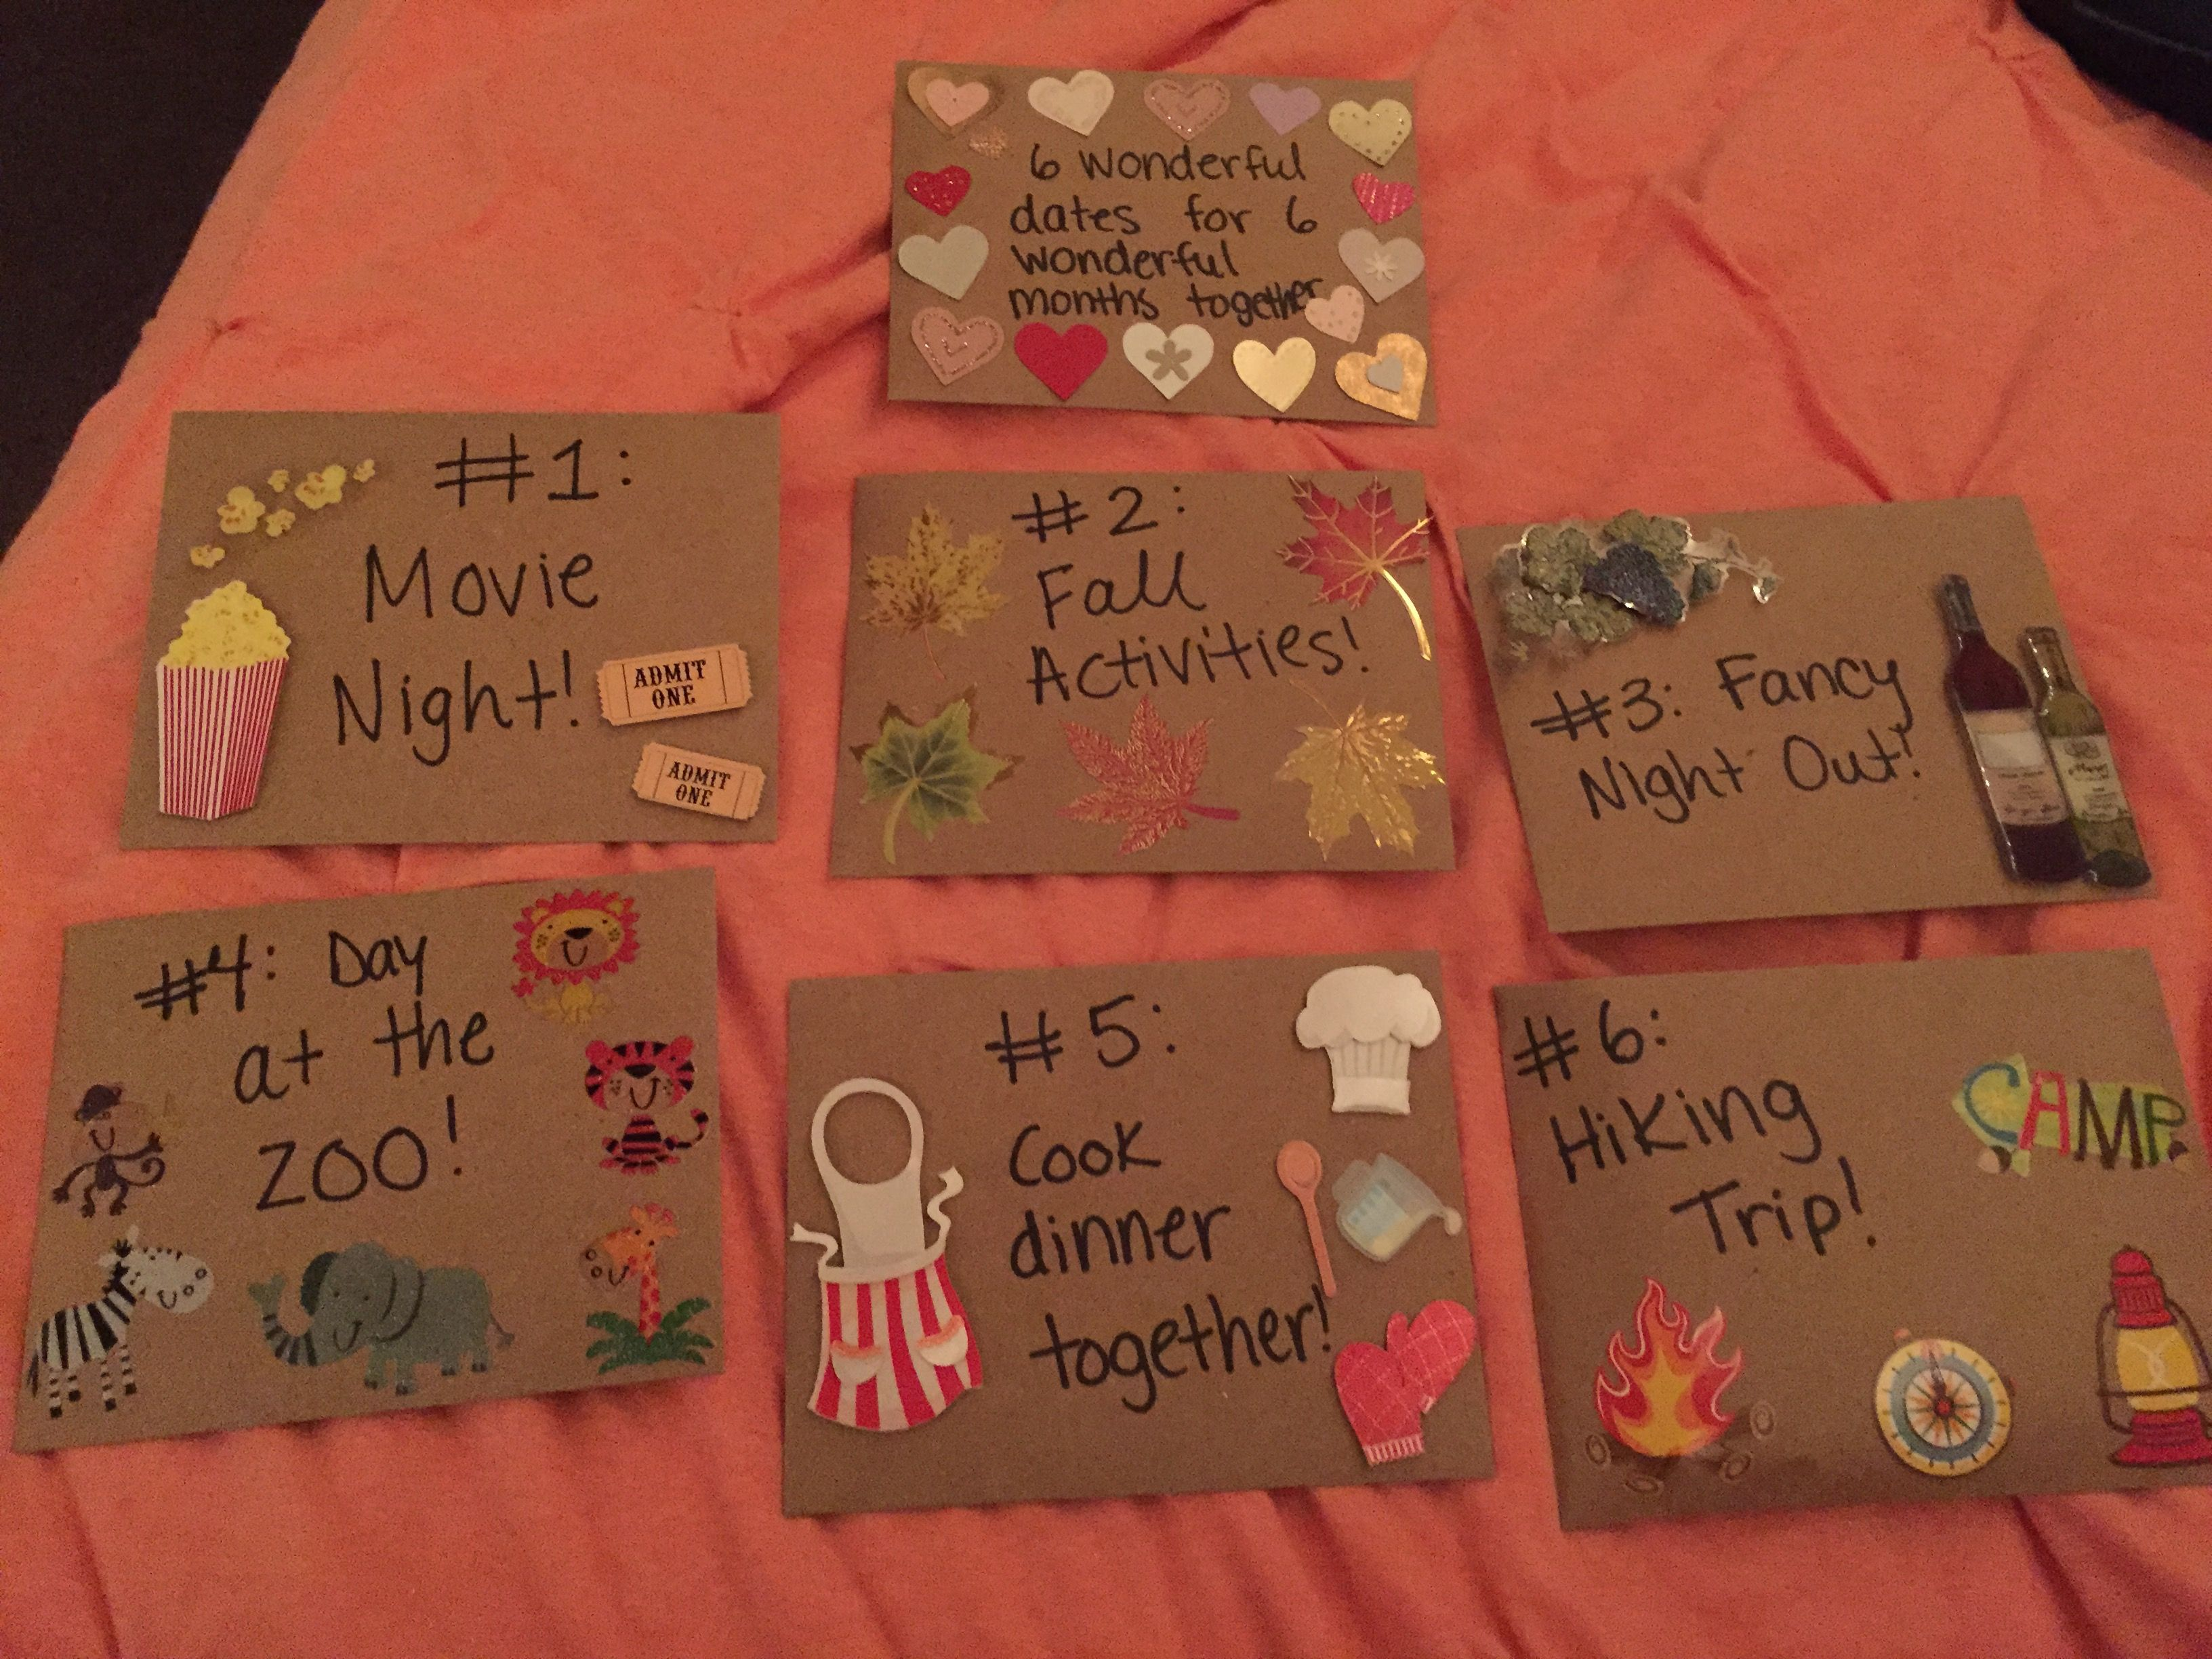 6 month anniversary gift for my boyfriend- 6 dates for 6 ...